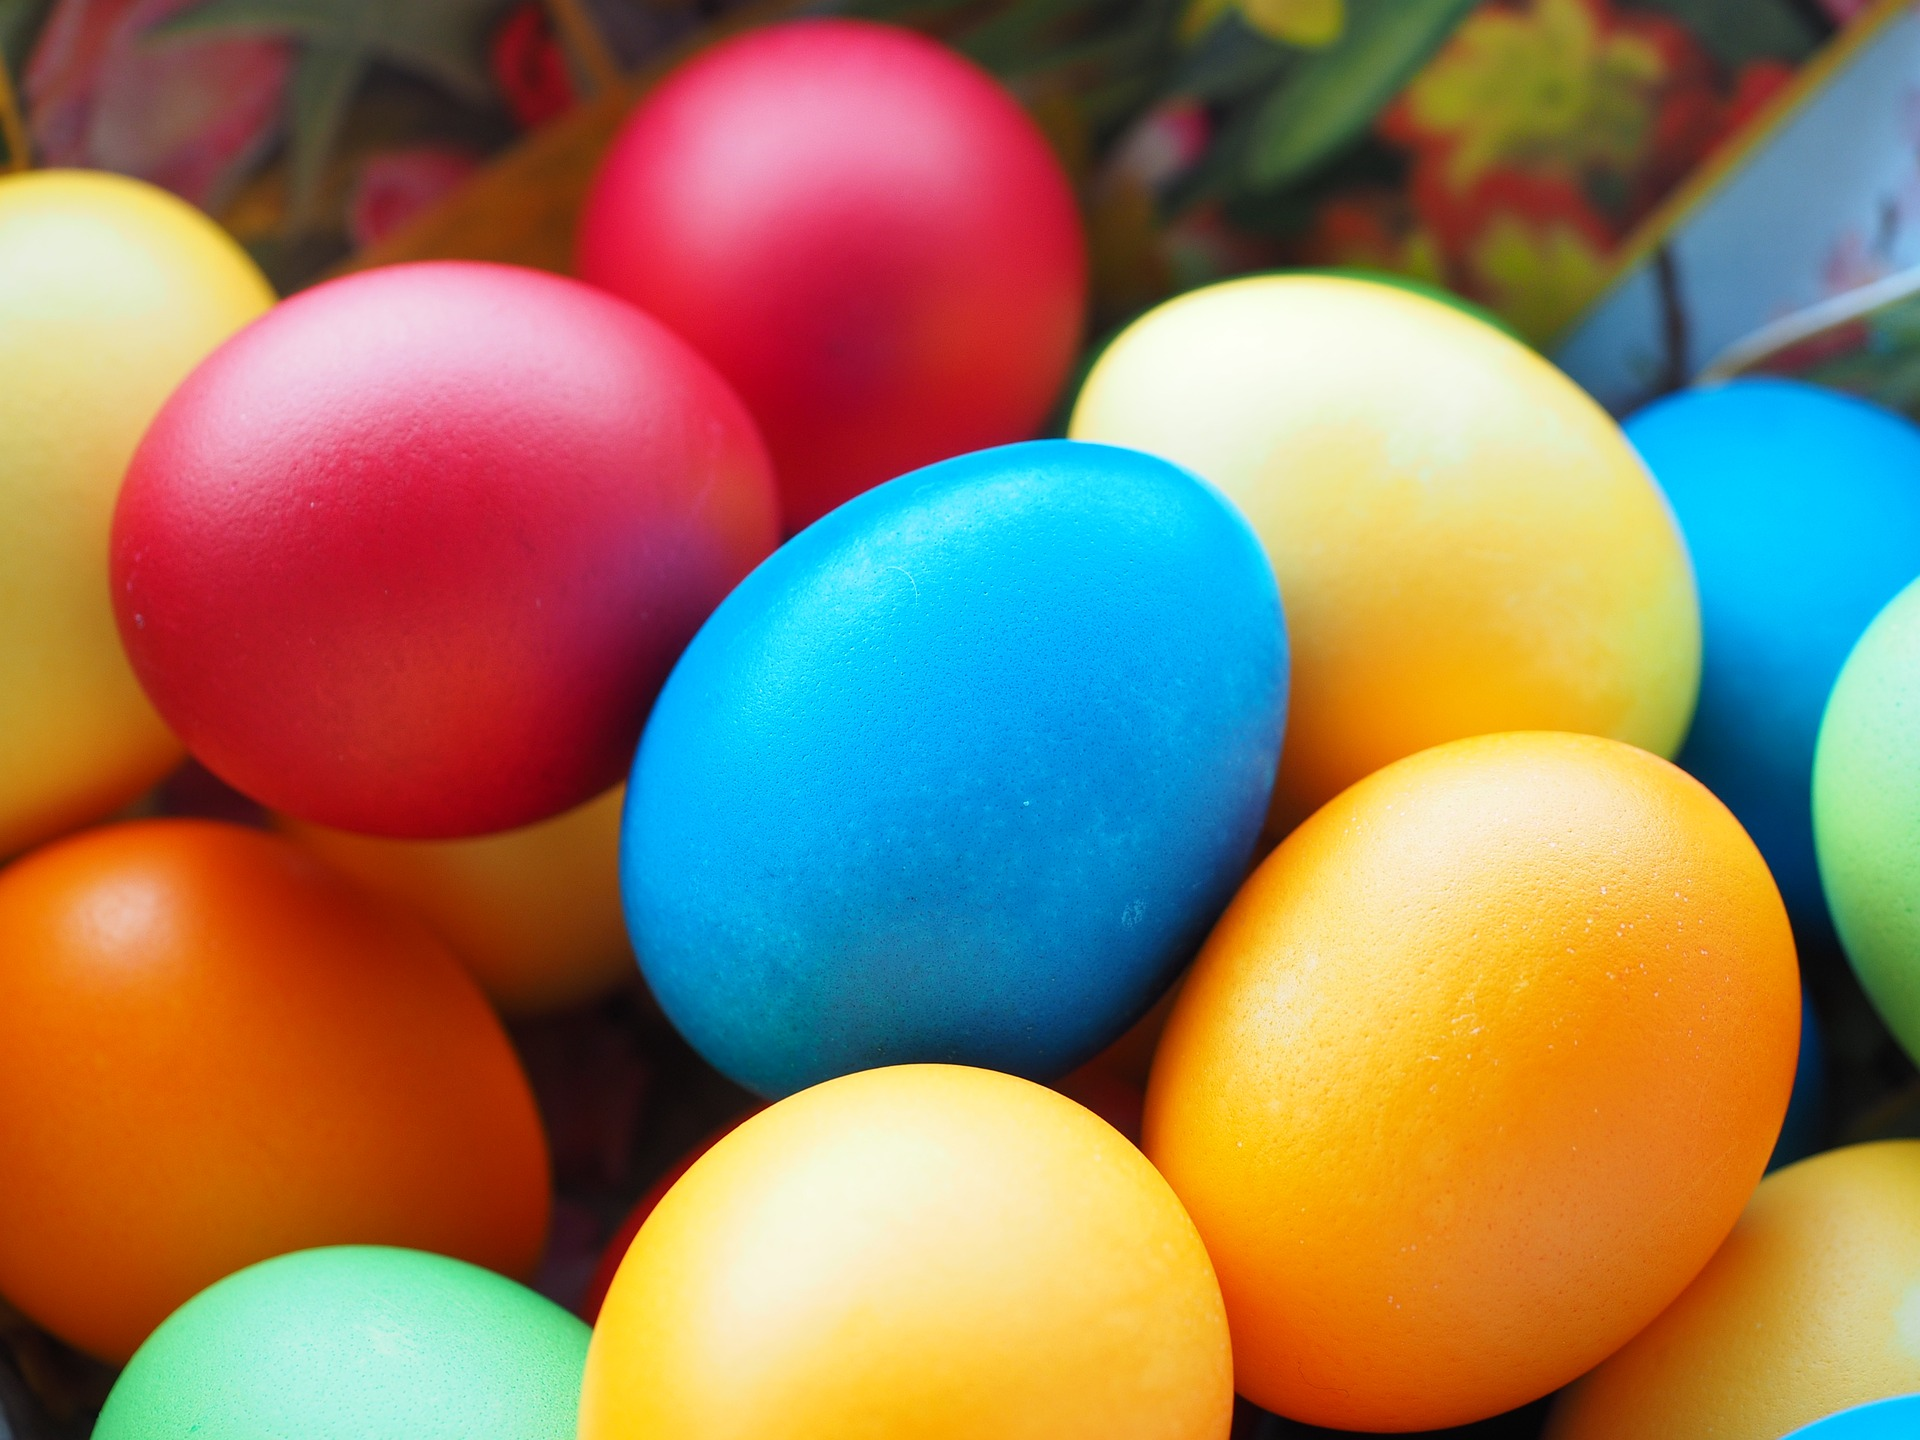 """Easter eggs"" by Hans/Pixabay"